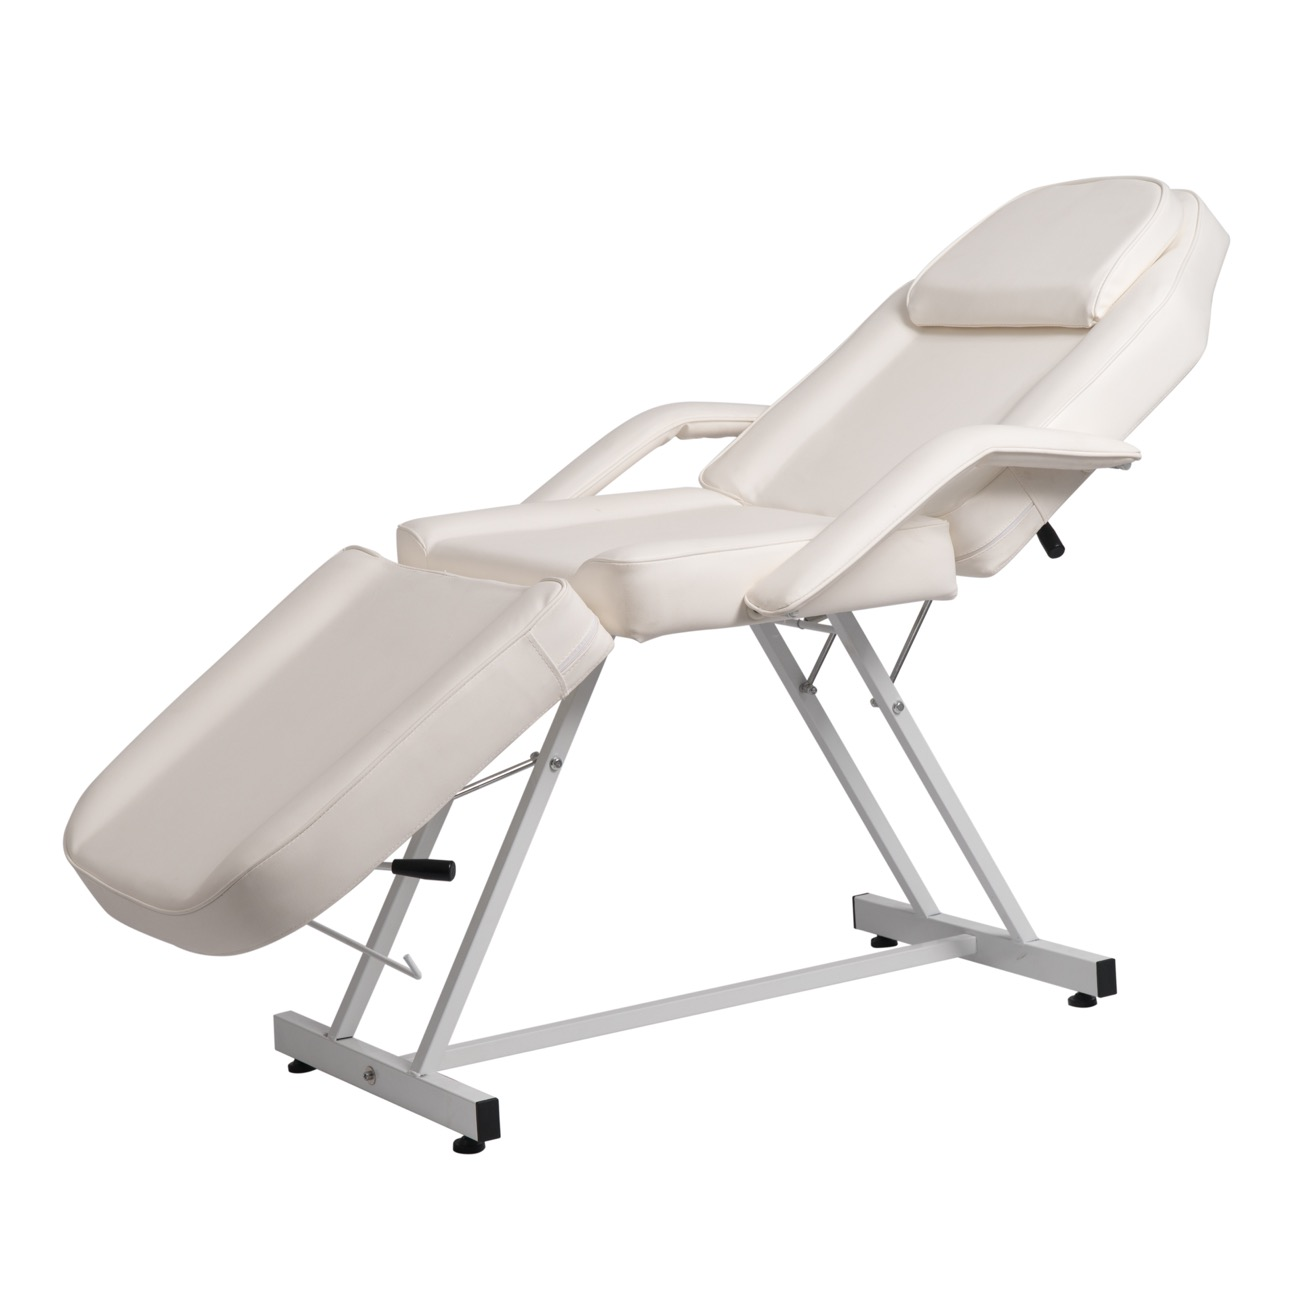 Facial Chairs Adjustable Facial Bed Table Massage Chair Beauty Spa